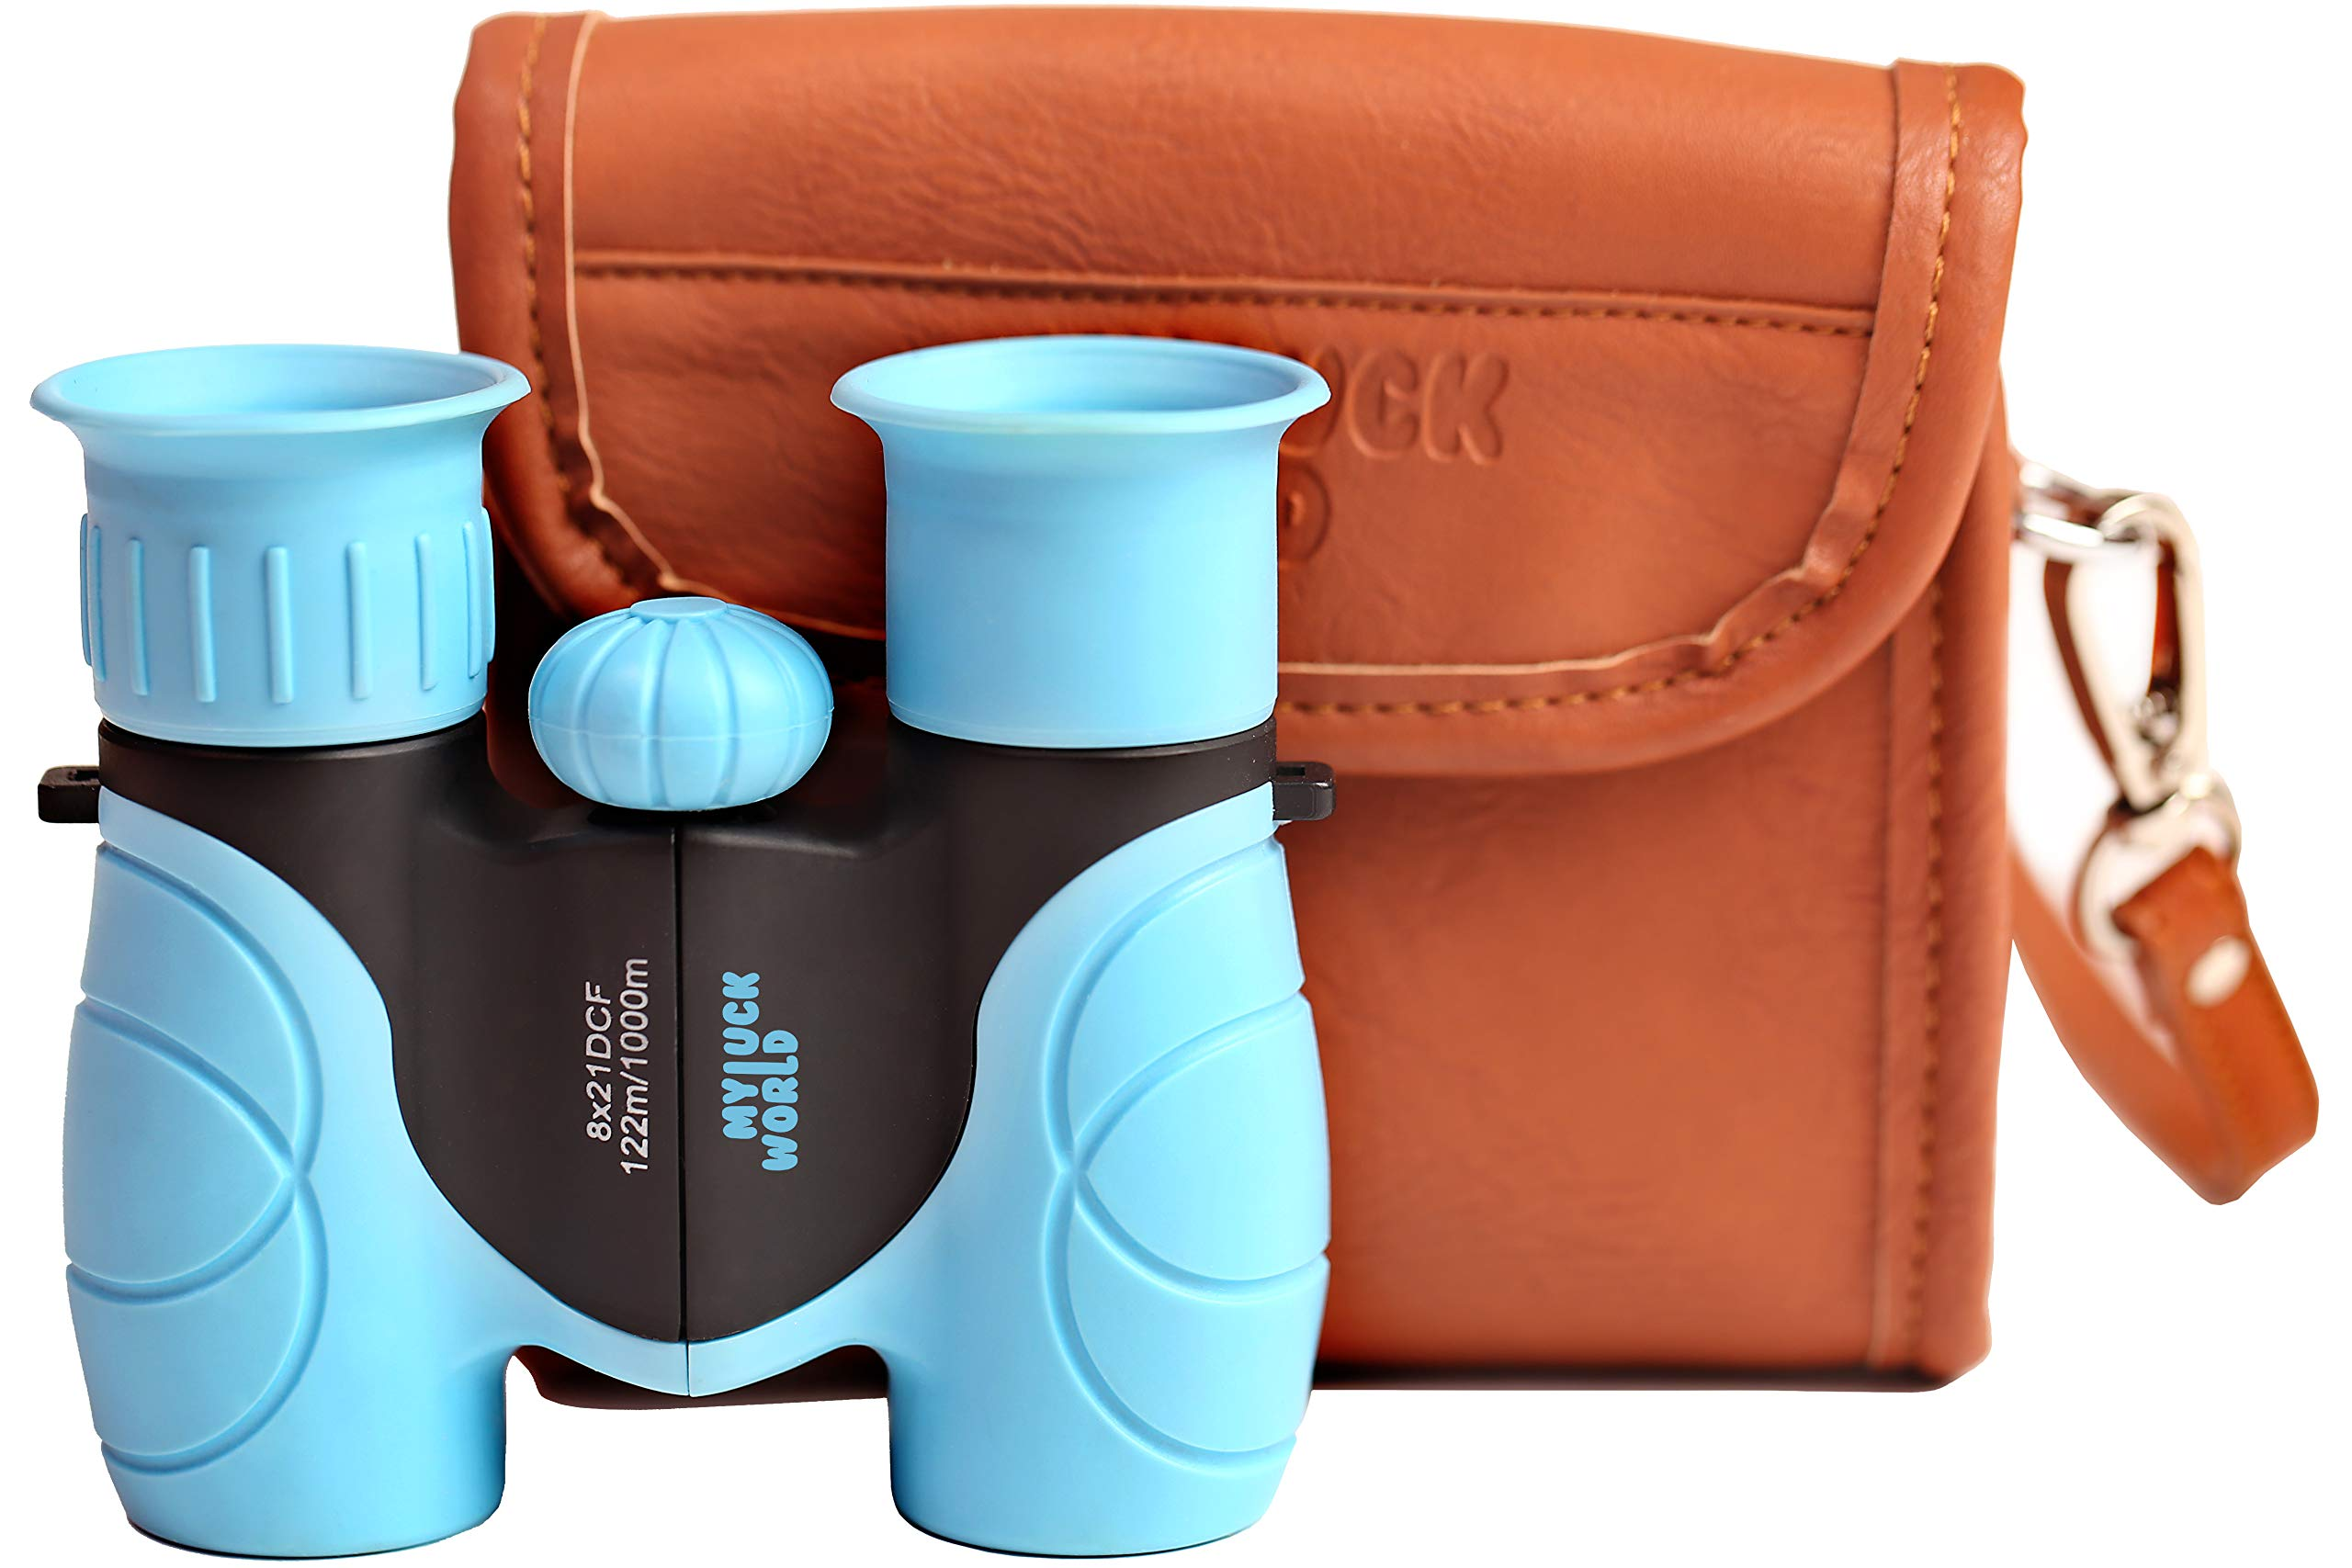 Binoculars for Kids 8x21 High-Resolution Shock-Proof Real Optics - Pu-Leather Crossbody Bag - for Bird Watching Outdoor Camping Hunting Hiking Star Gazing - Best Gift for Children - Birthday Present